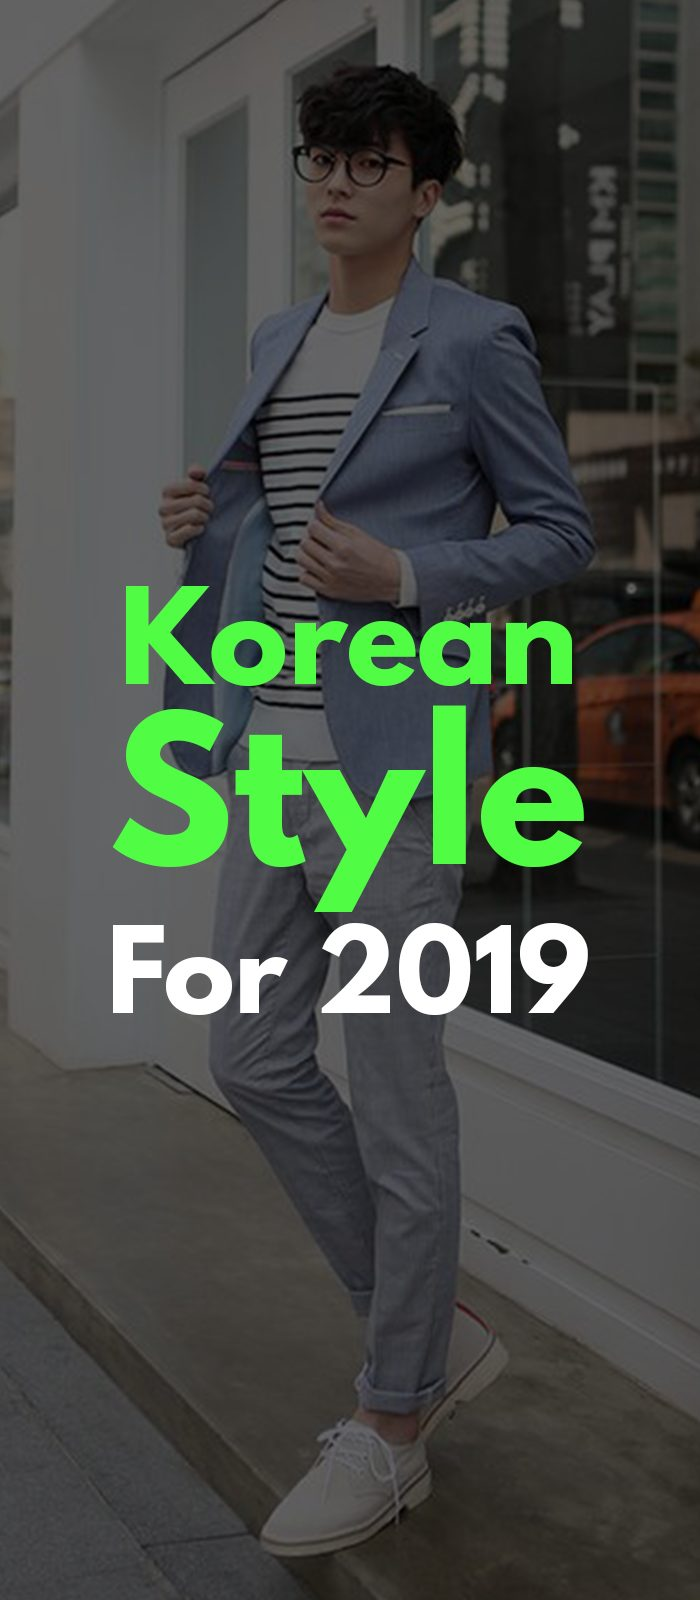 Korean Style For 2019